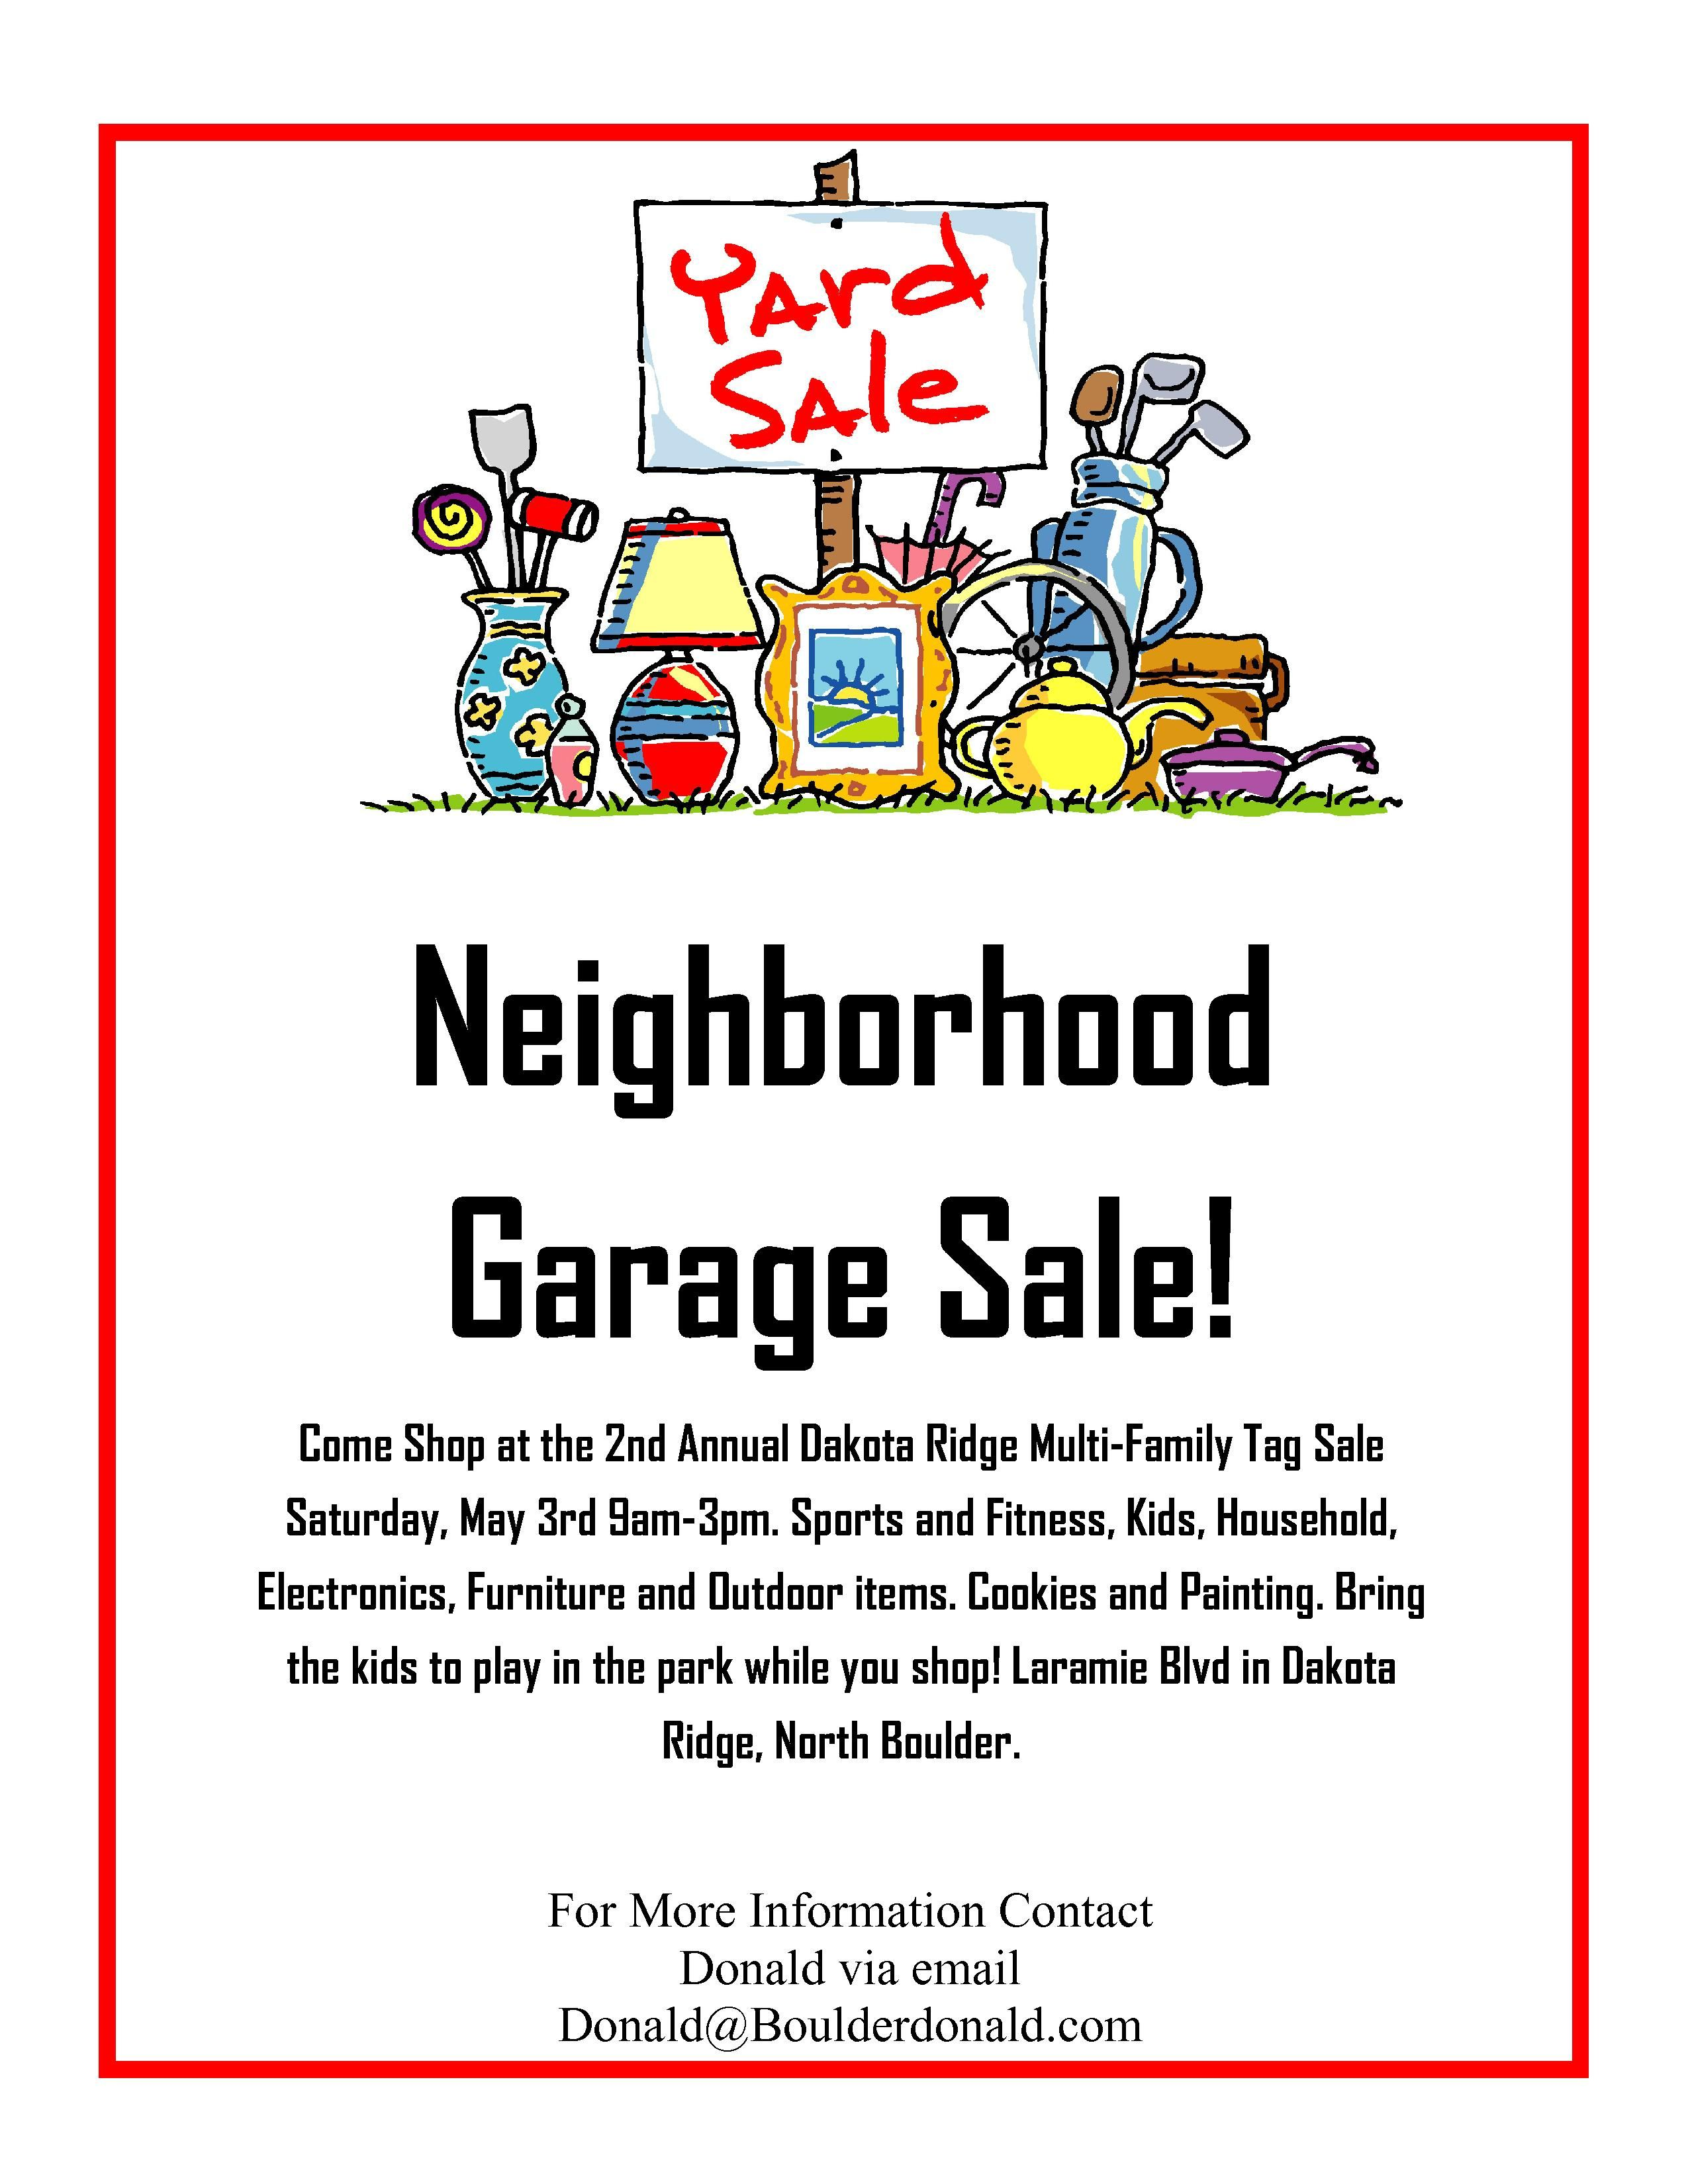 Dakota Ridge Community Garage Sale  May Rd   Oh Yeah ItS